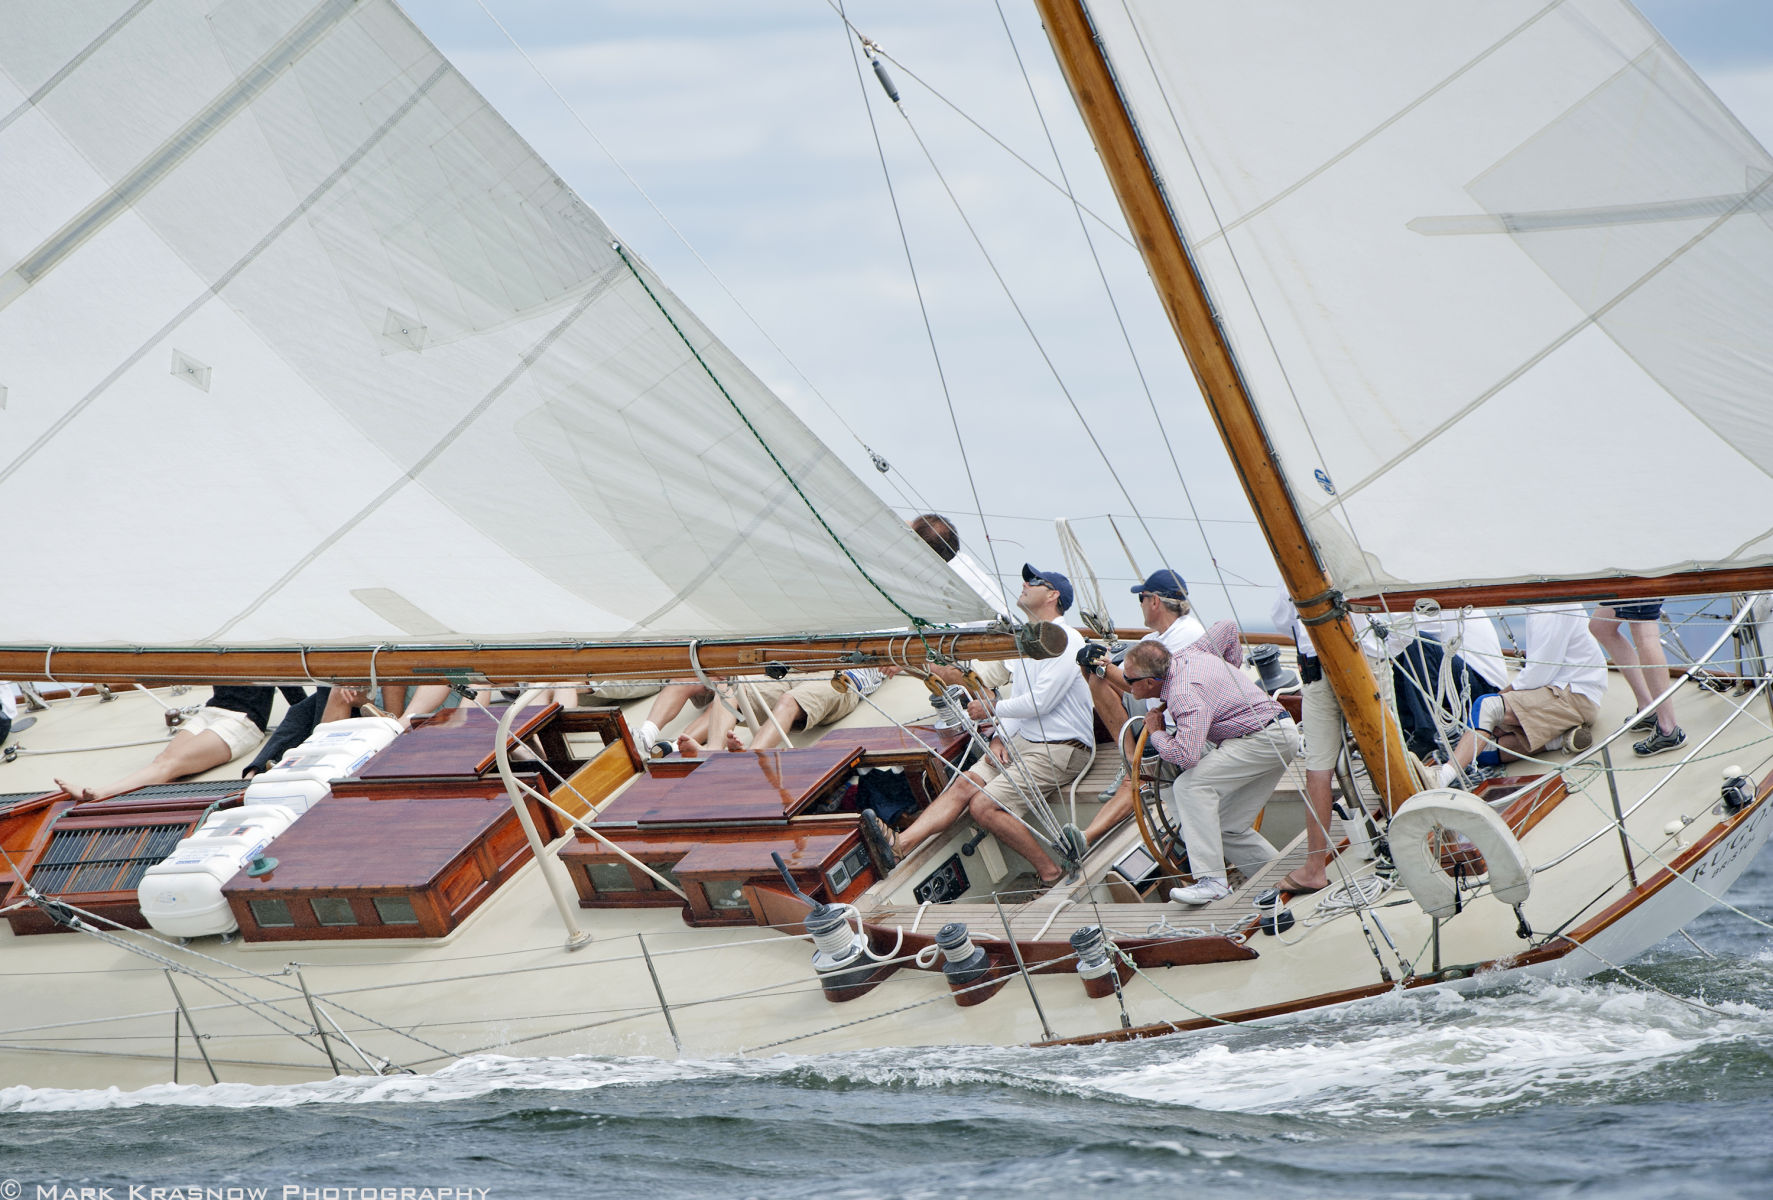 NY 40 Rugosa at the Herreshoff Classic Regatta in Bristol, RI